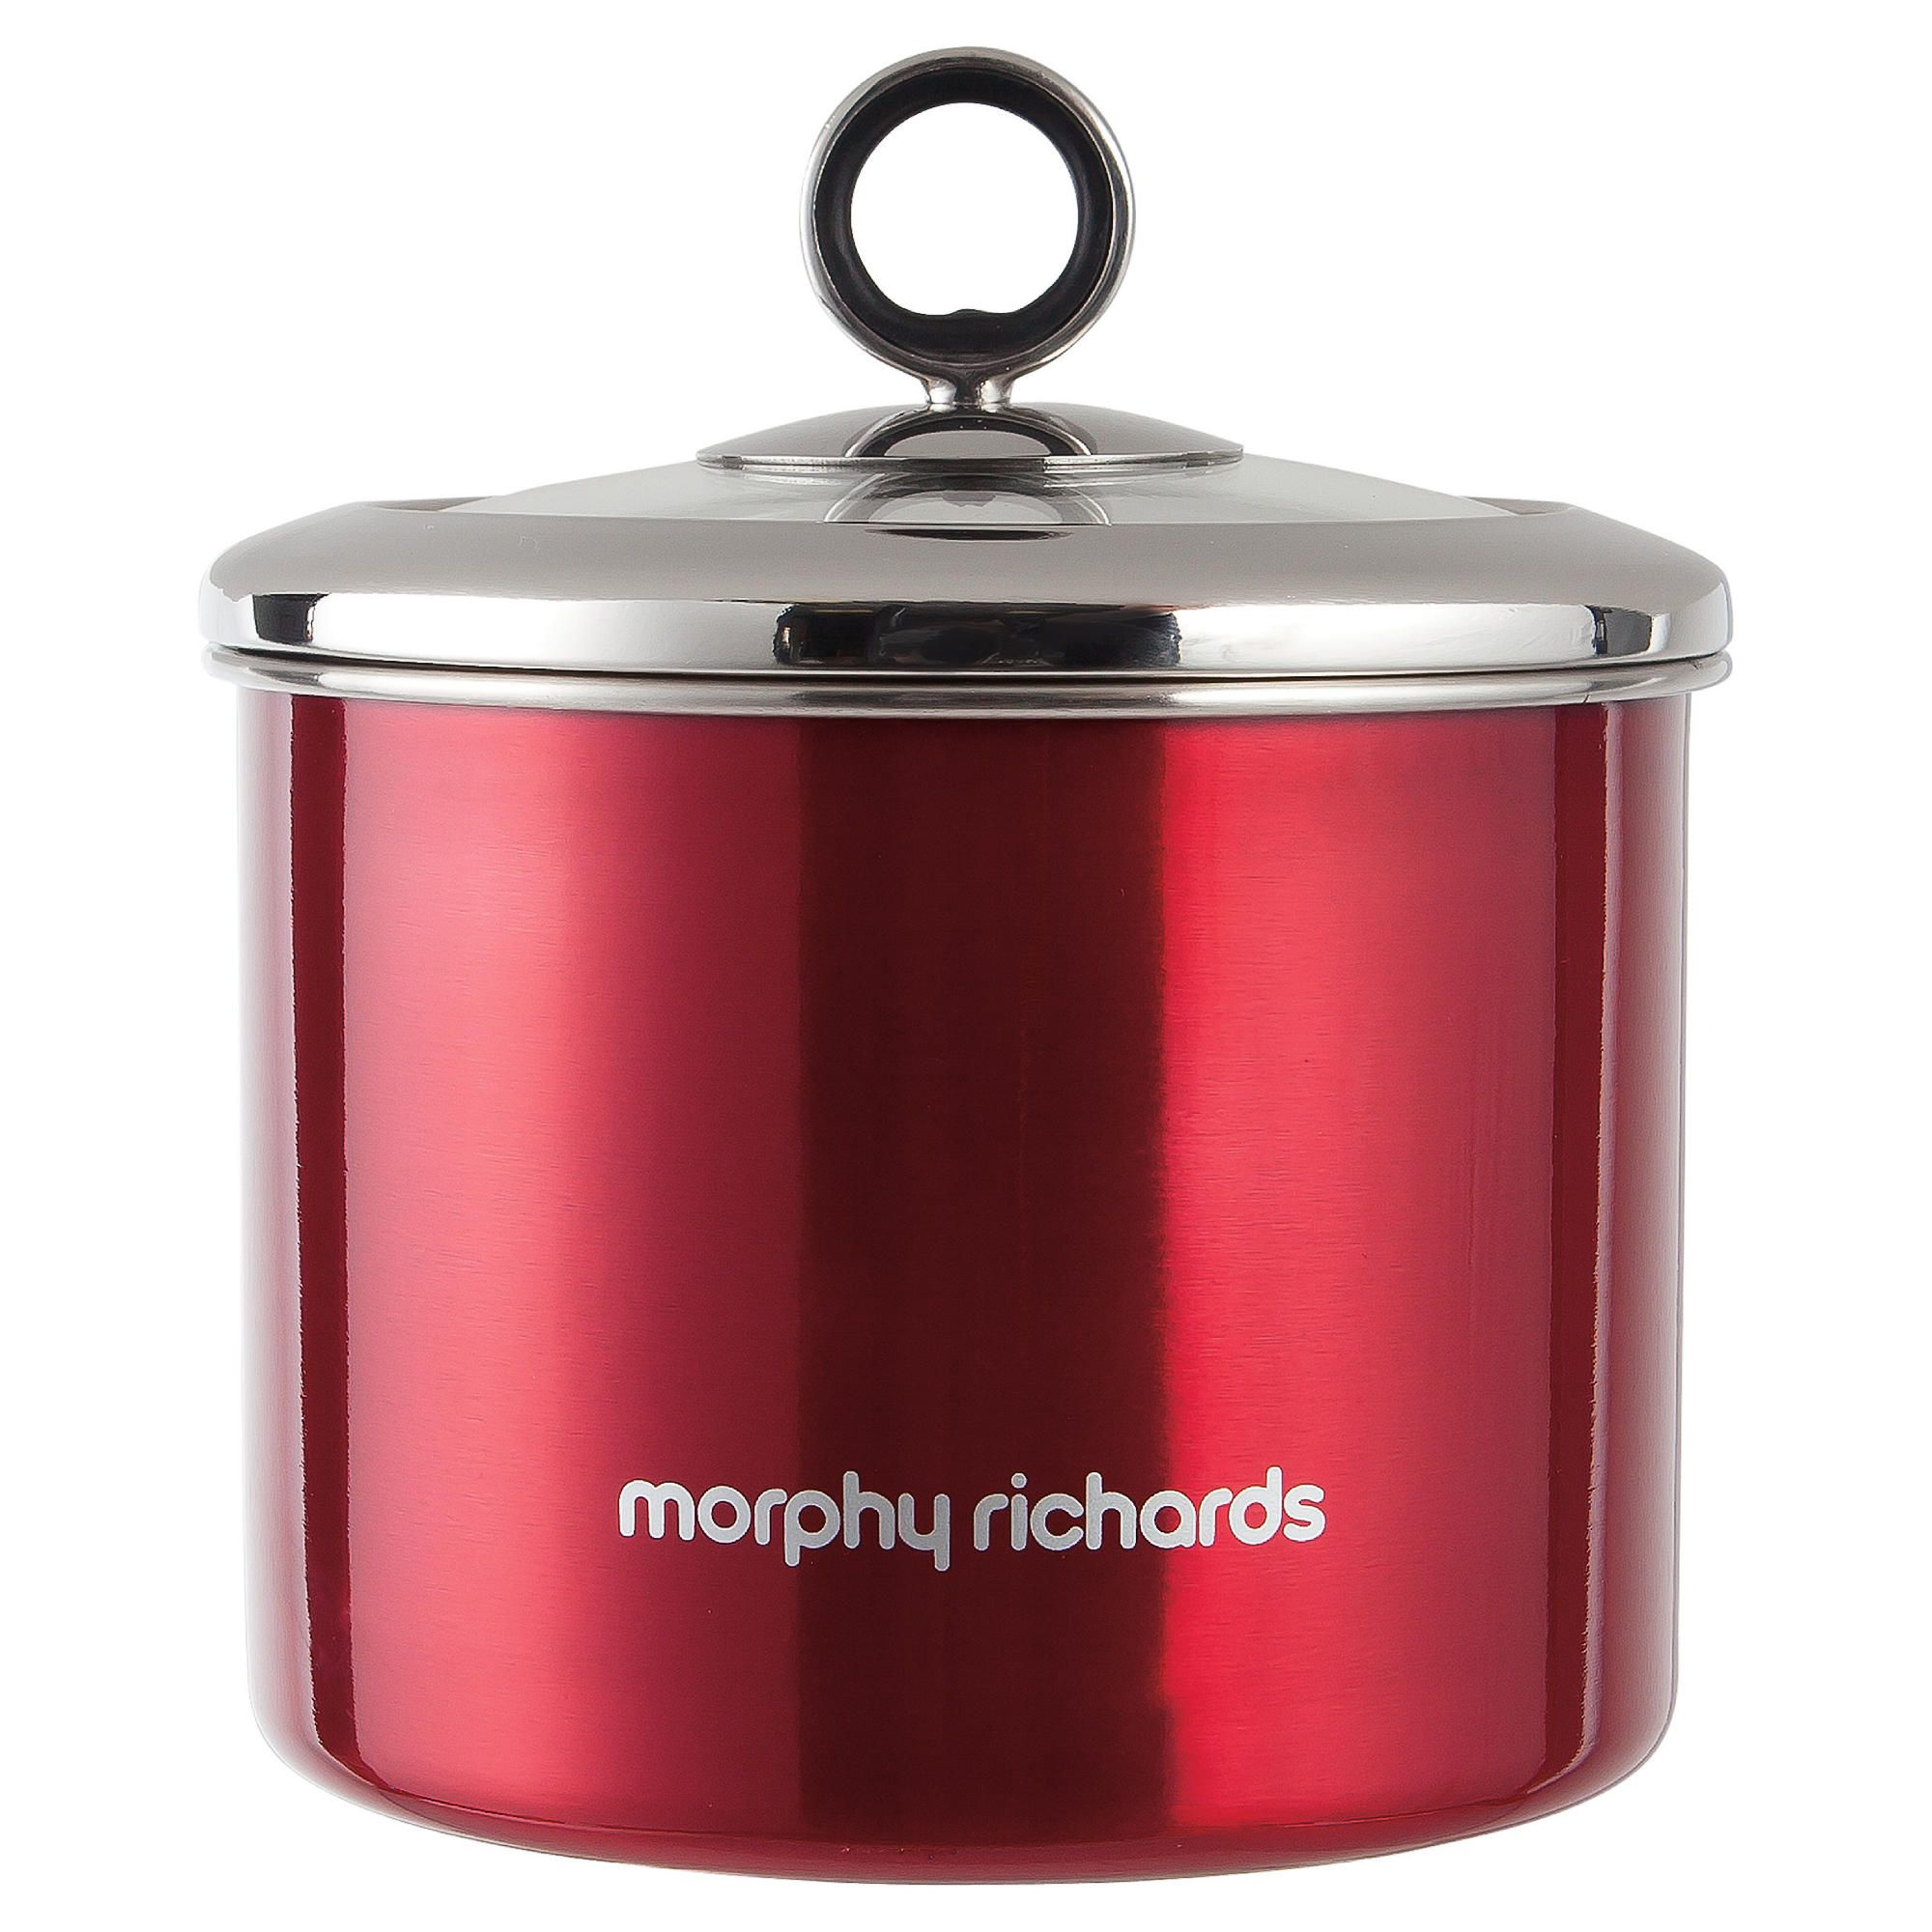 Morphy Richards 14x13.5cm Storage Canister, Red